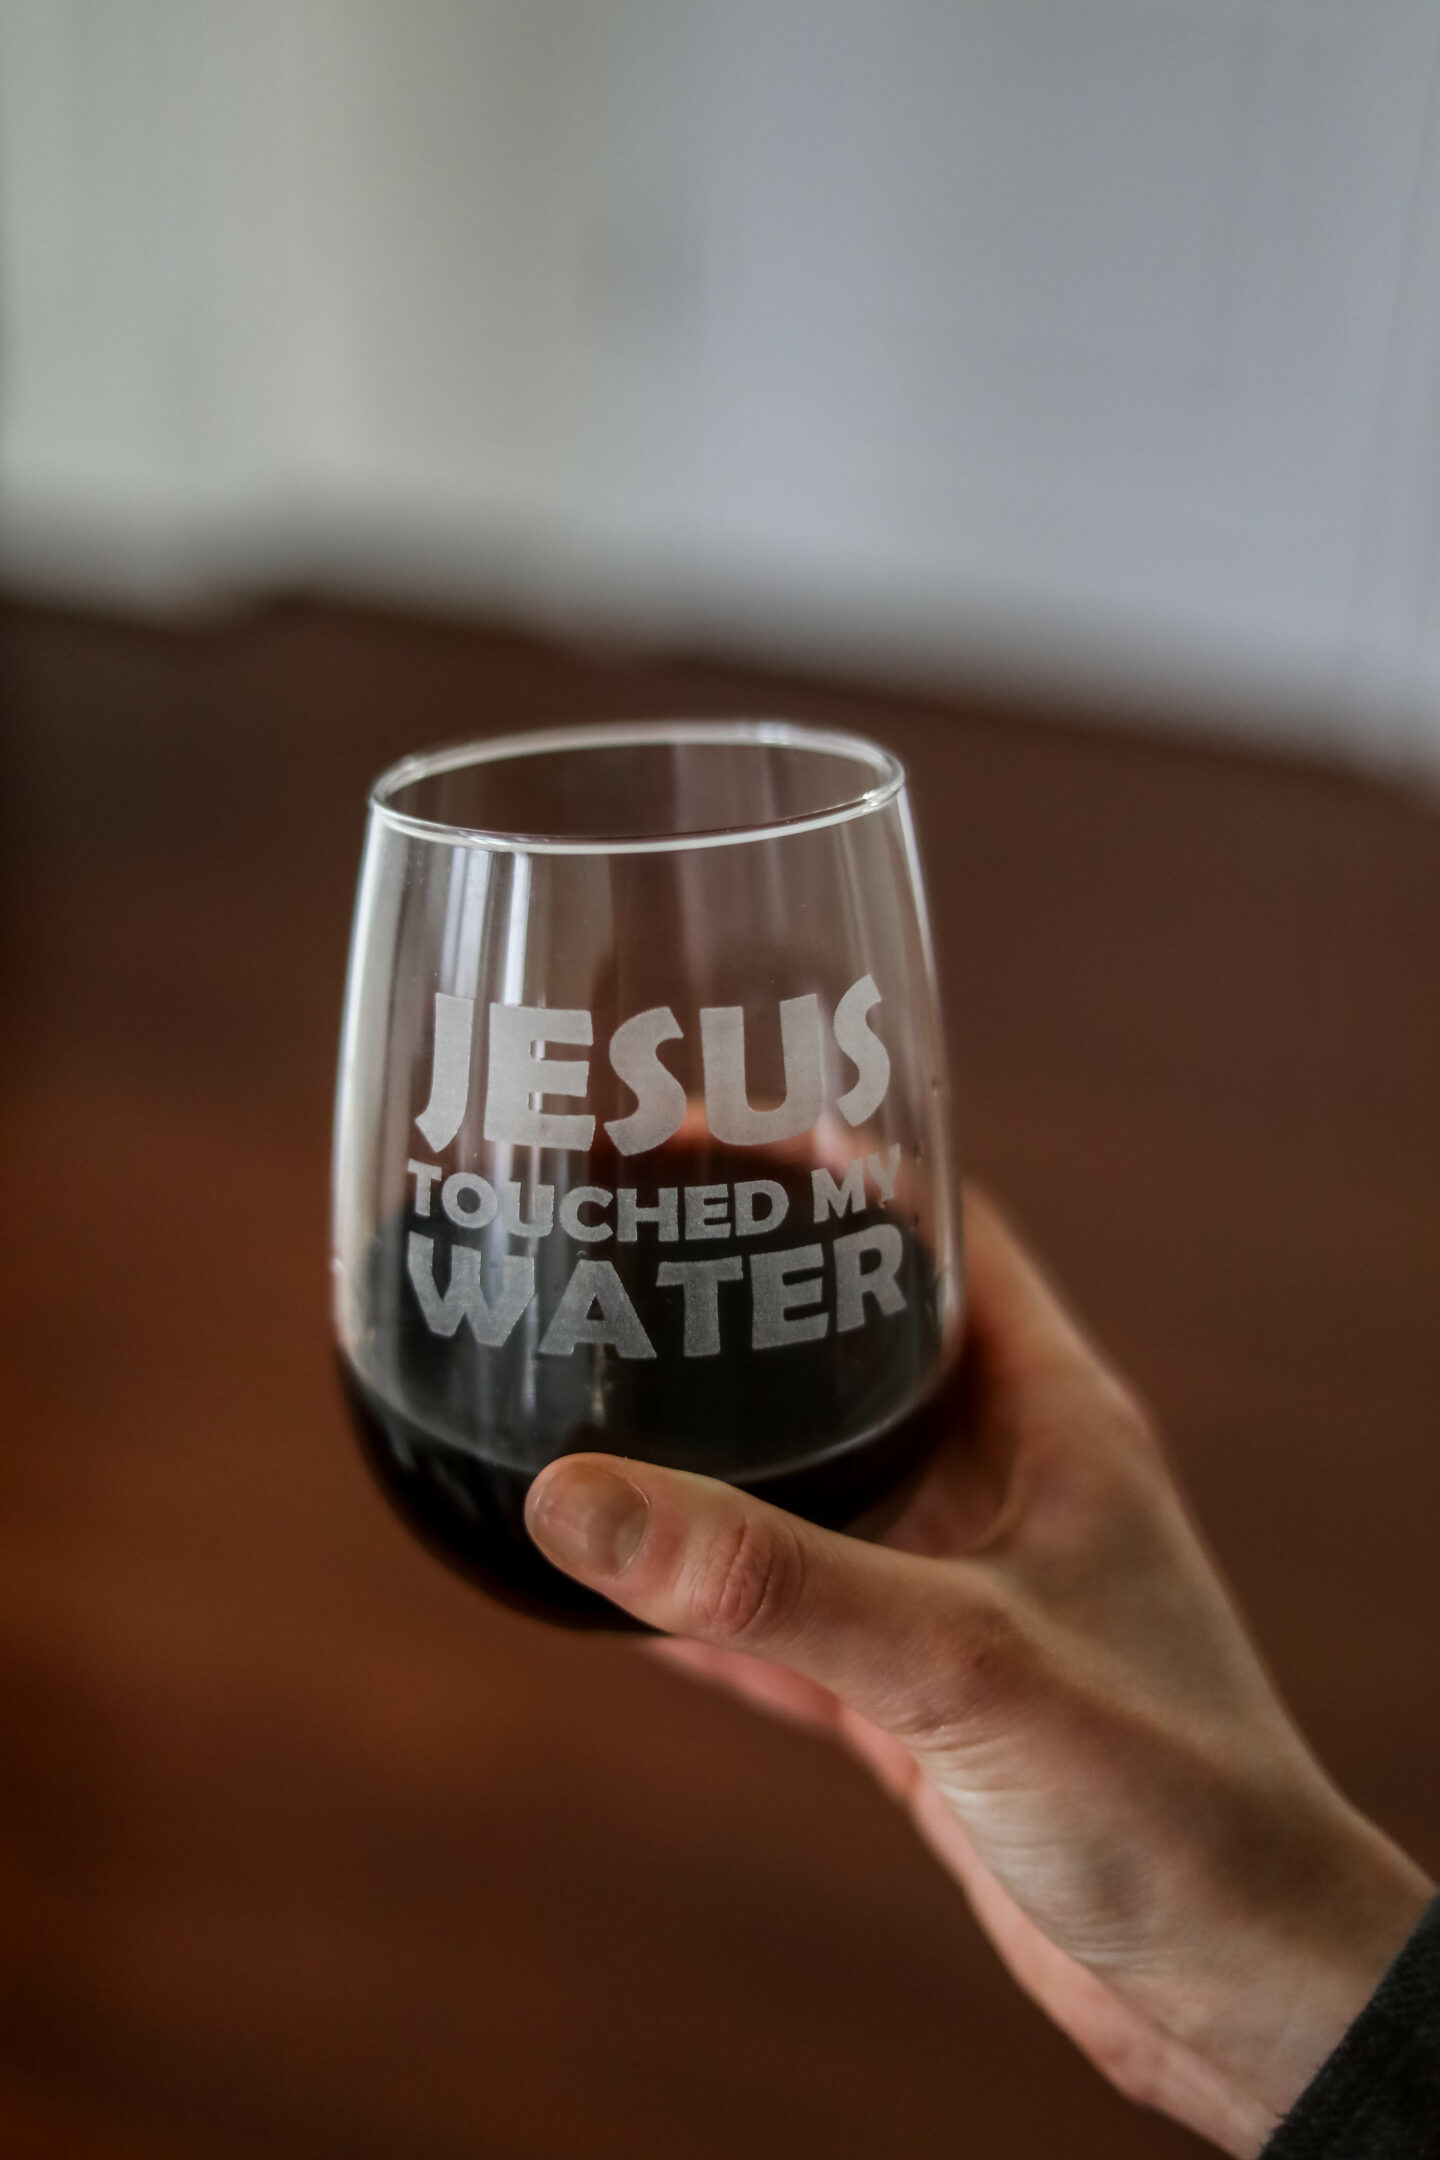 Jesus Touched My Water wine glass - funny wine glass in Monthly Favorites on Coming Up Roses